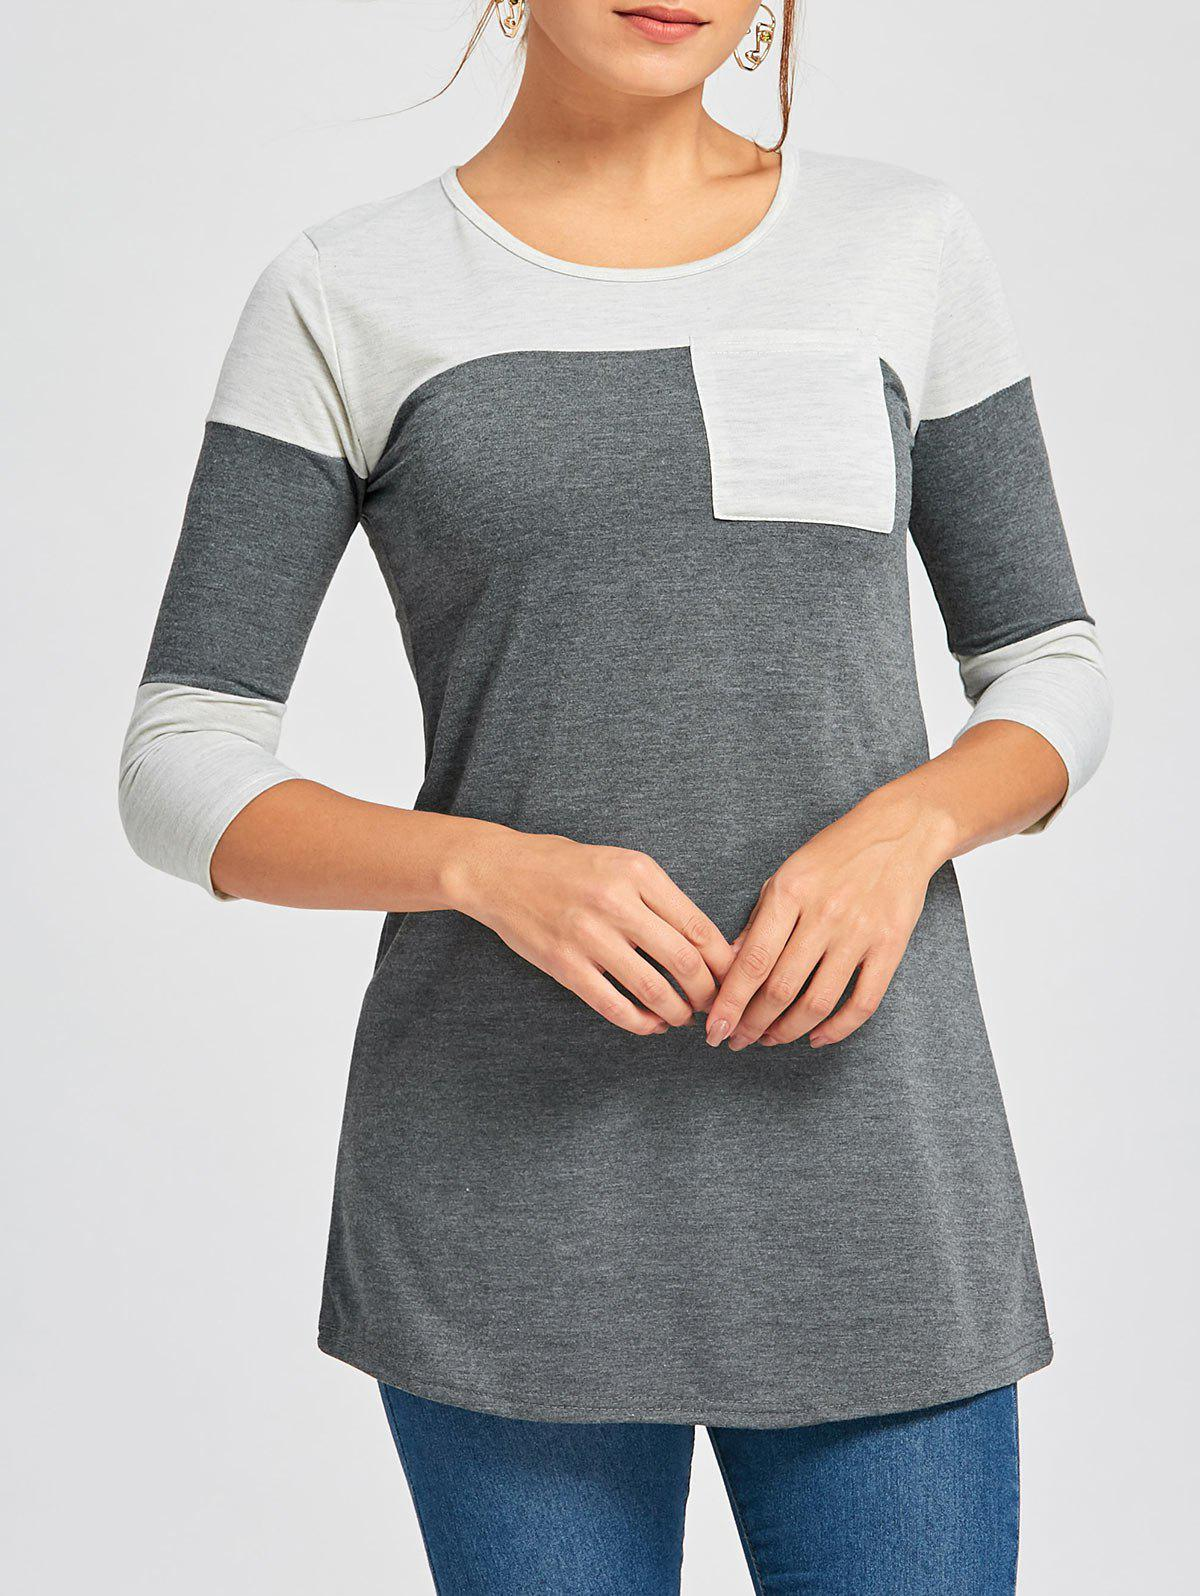 Color Block Tunic T Shirt - DEEP GRAY XL